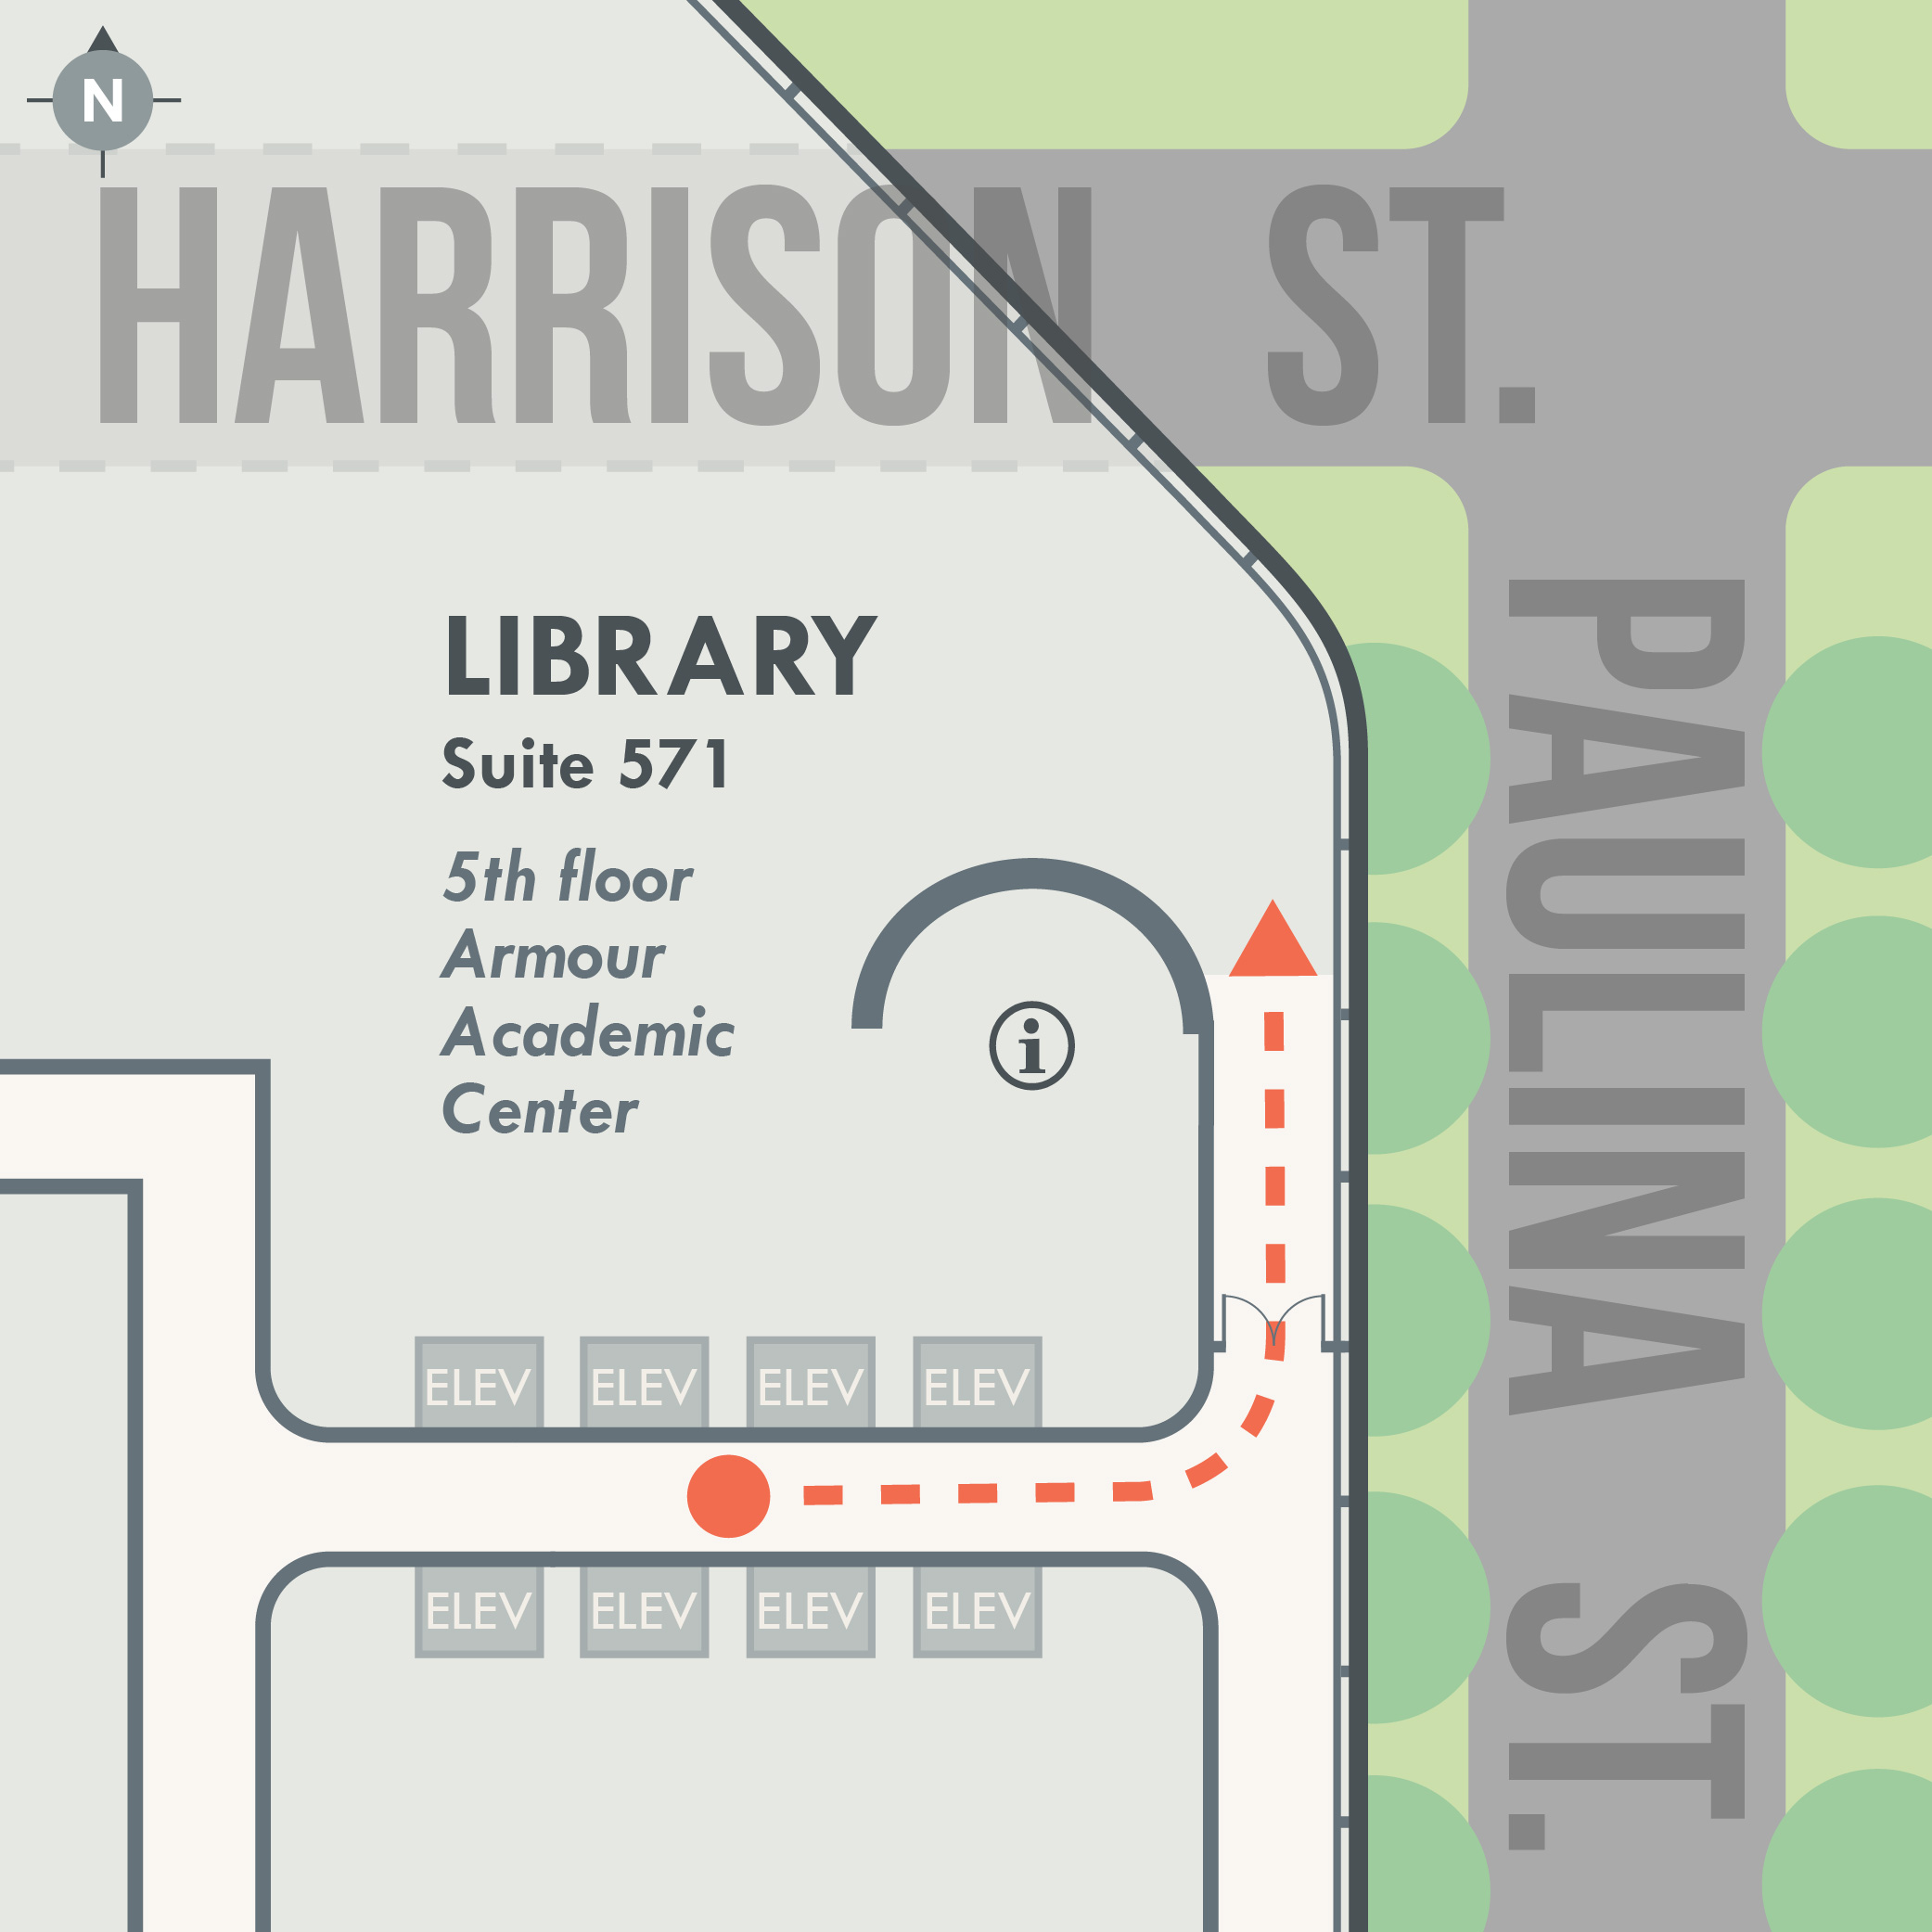 Map of the library's location